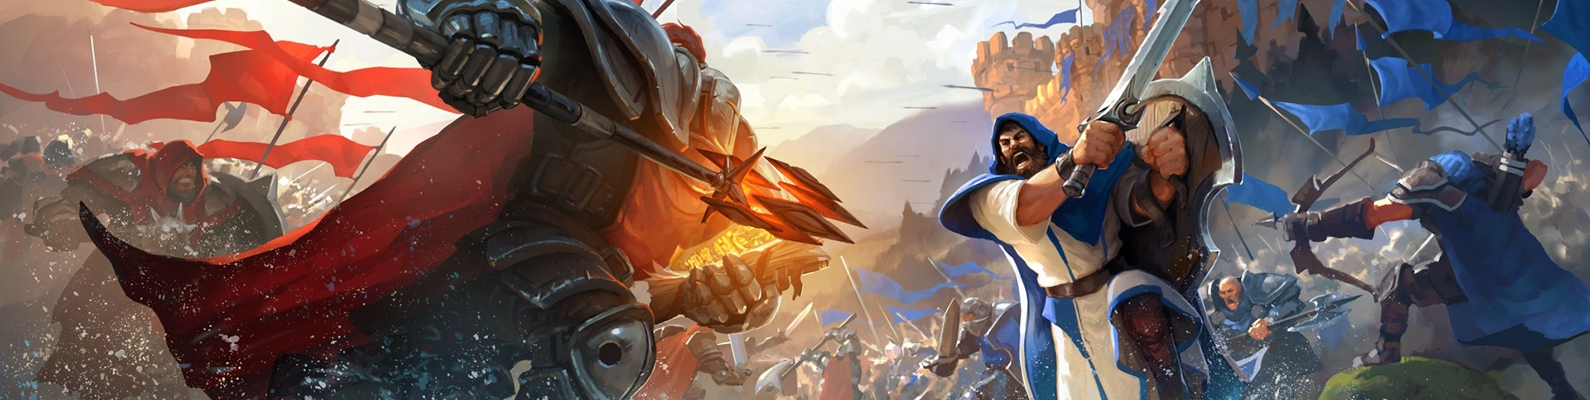 Game, Albion Online, Battle